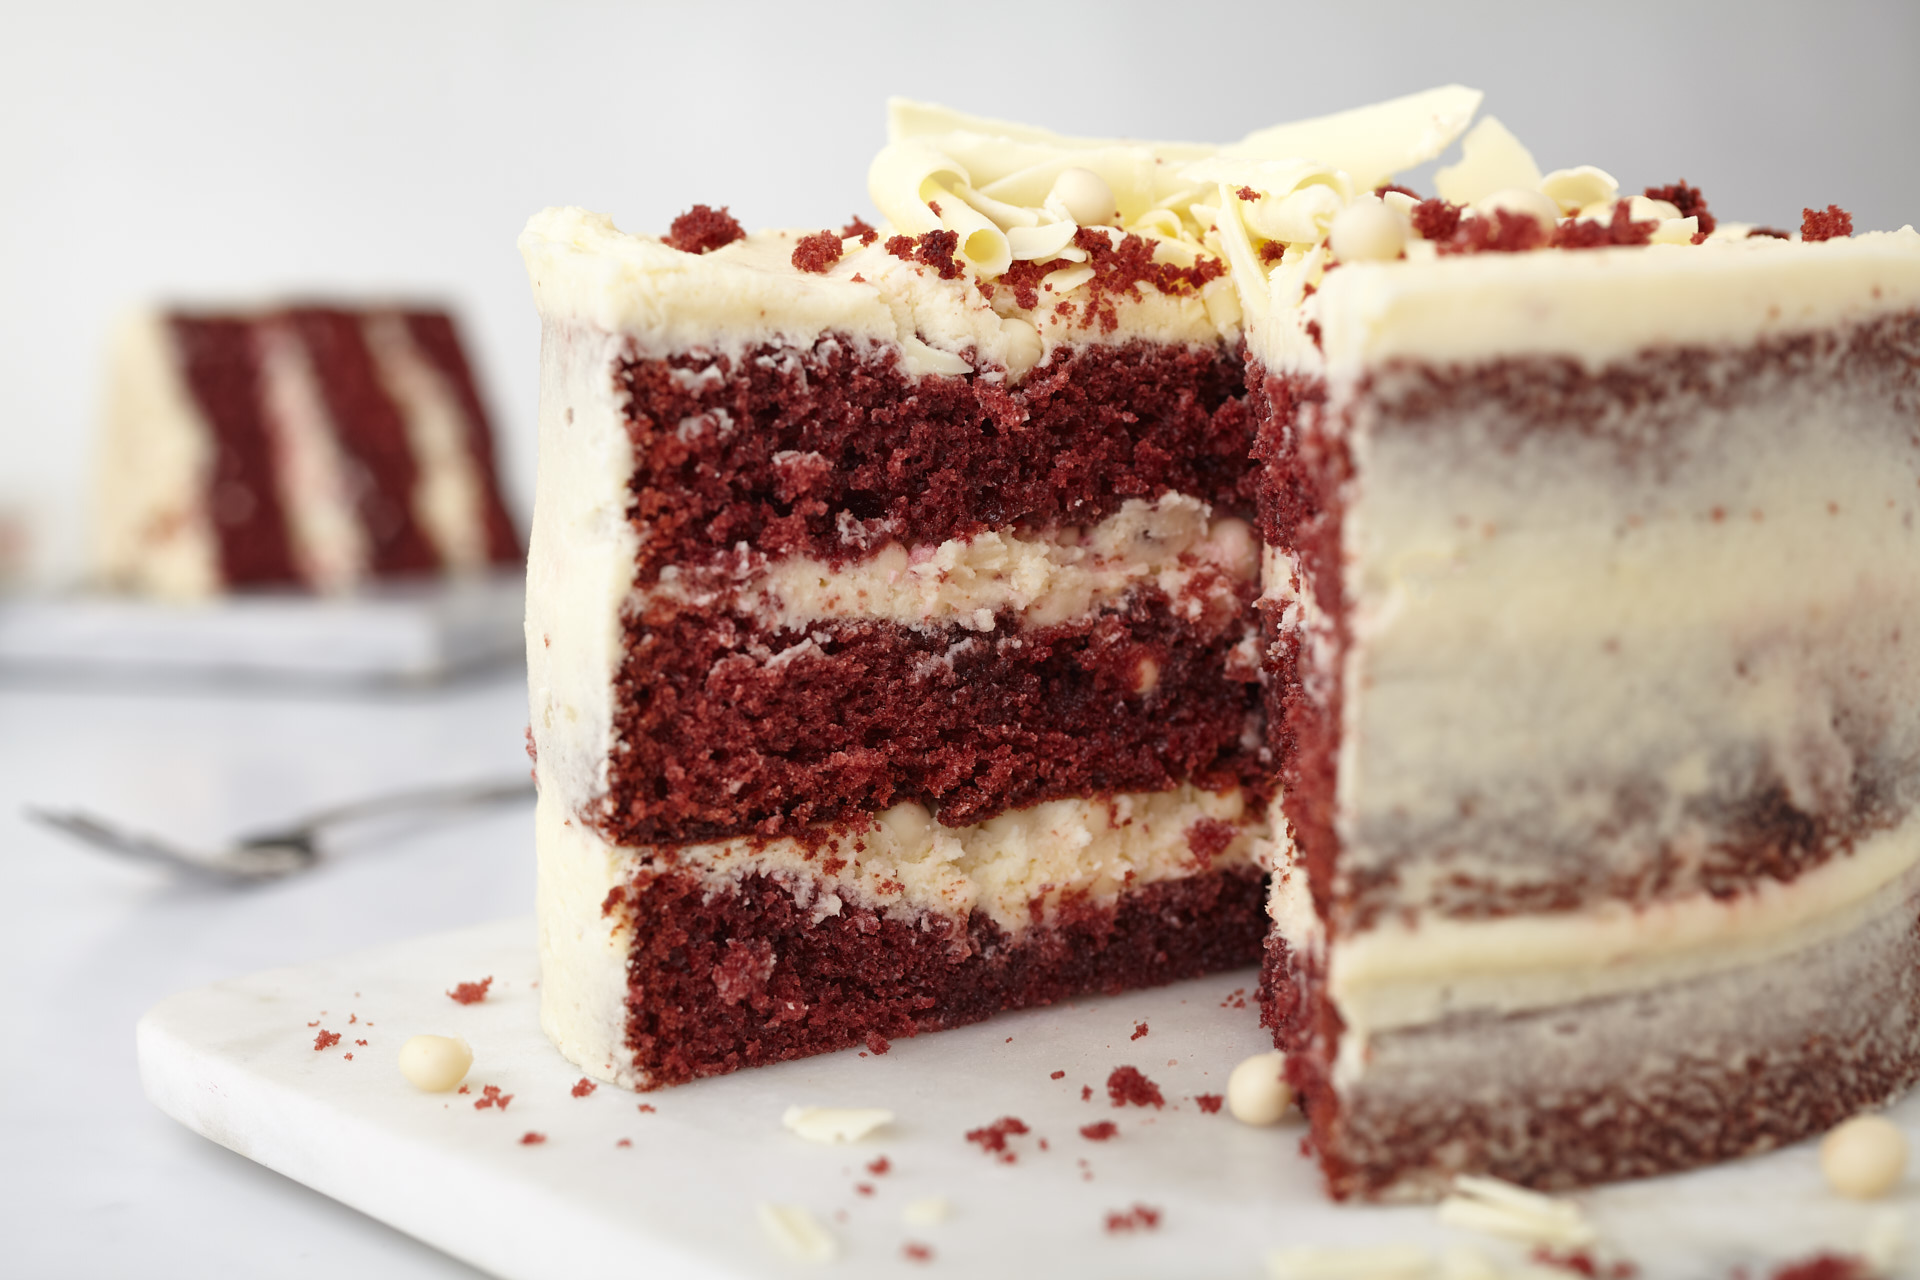 The most incredible Red Velvet Cake with Cream Cheese Frosting! Park Cakes Bakery